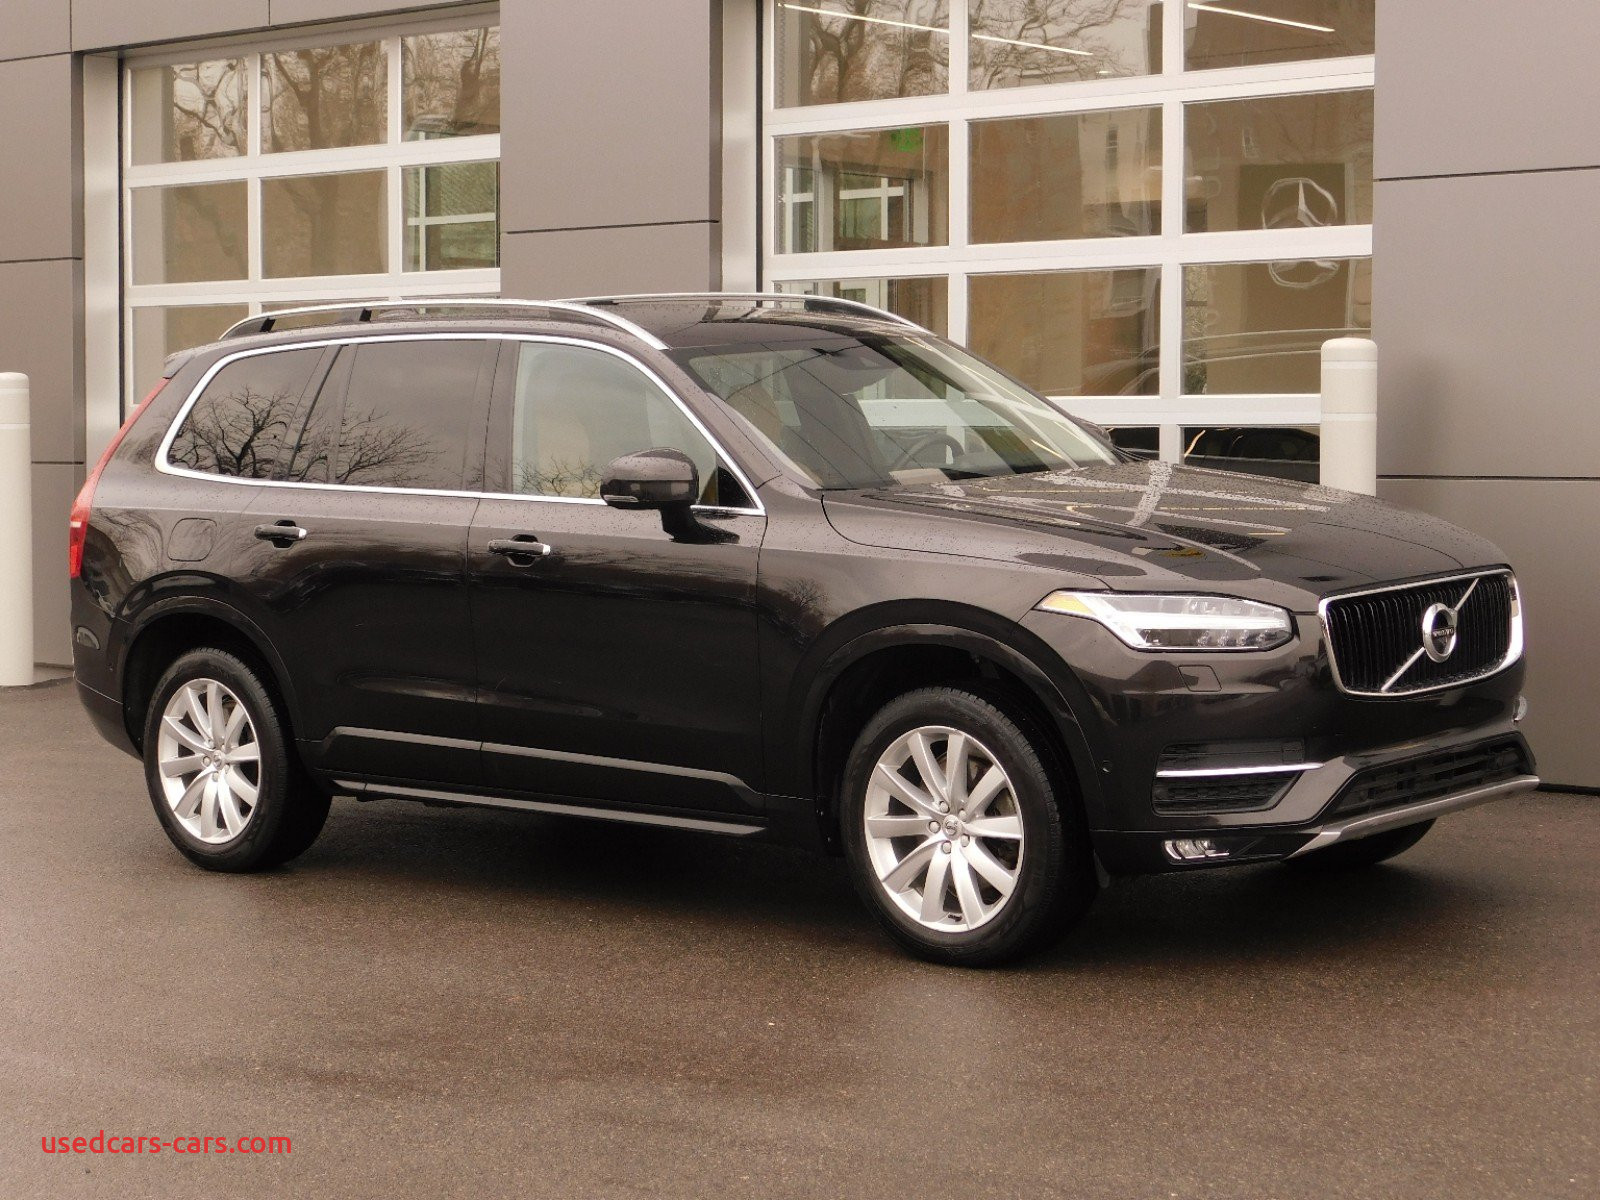 2016 Volvo Xc90 T6 Beautiful Pre Owned Volvo Xc90 T6 Momentum with Navigation & Awd